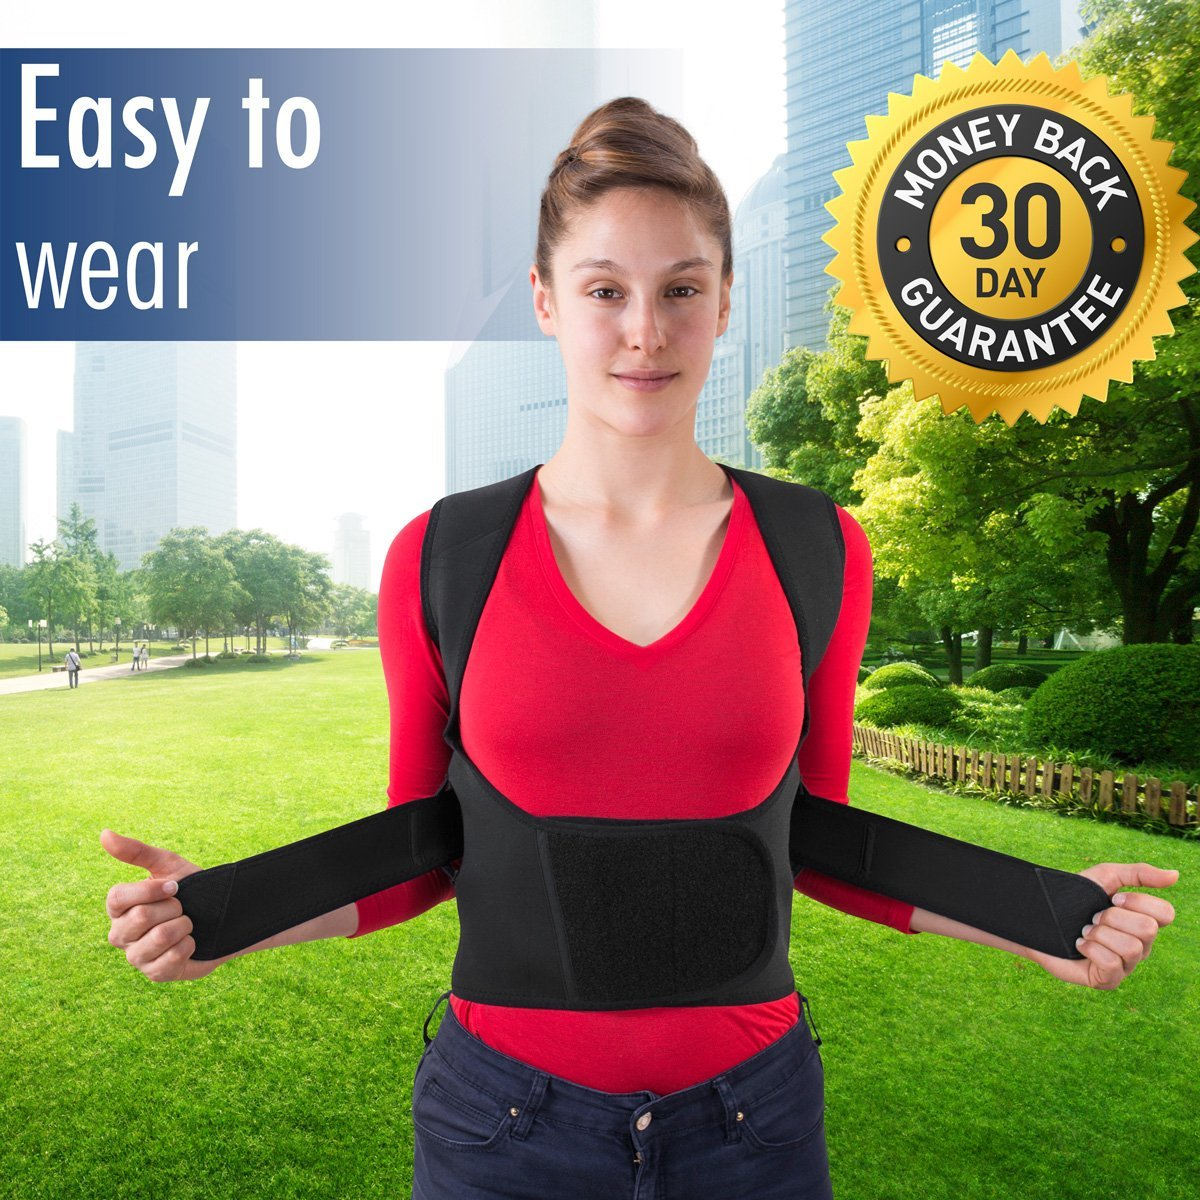 THE ULTIMATE Posture Corrector for Women & Men Under Clothes   Effective & Comfortable   Back Brace for Slouching & Hunching -Shoulders Clavicle Support   Upper & Lower Back Supports   Body Therapy by TK Care Pro. (Image #4)